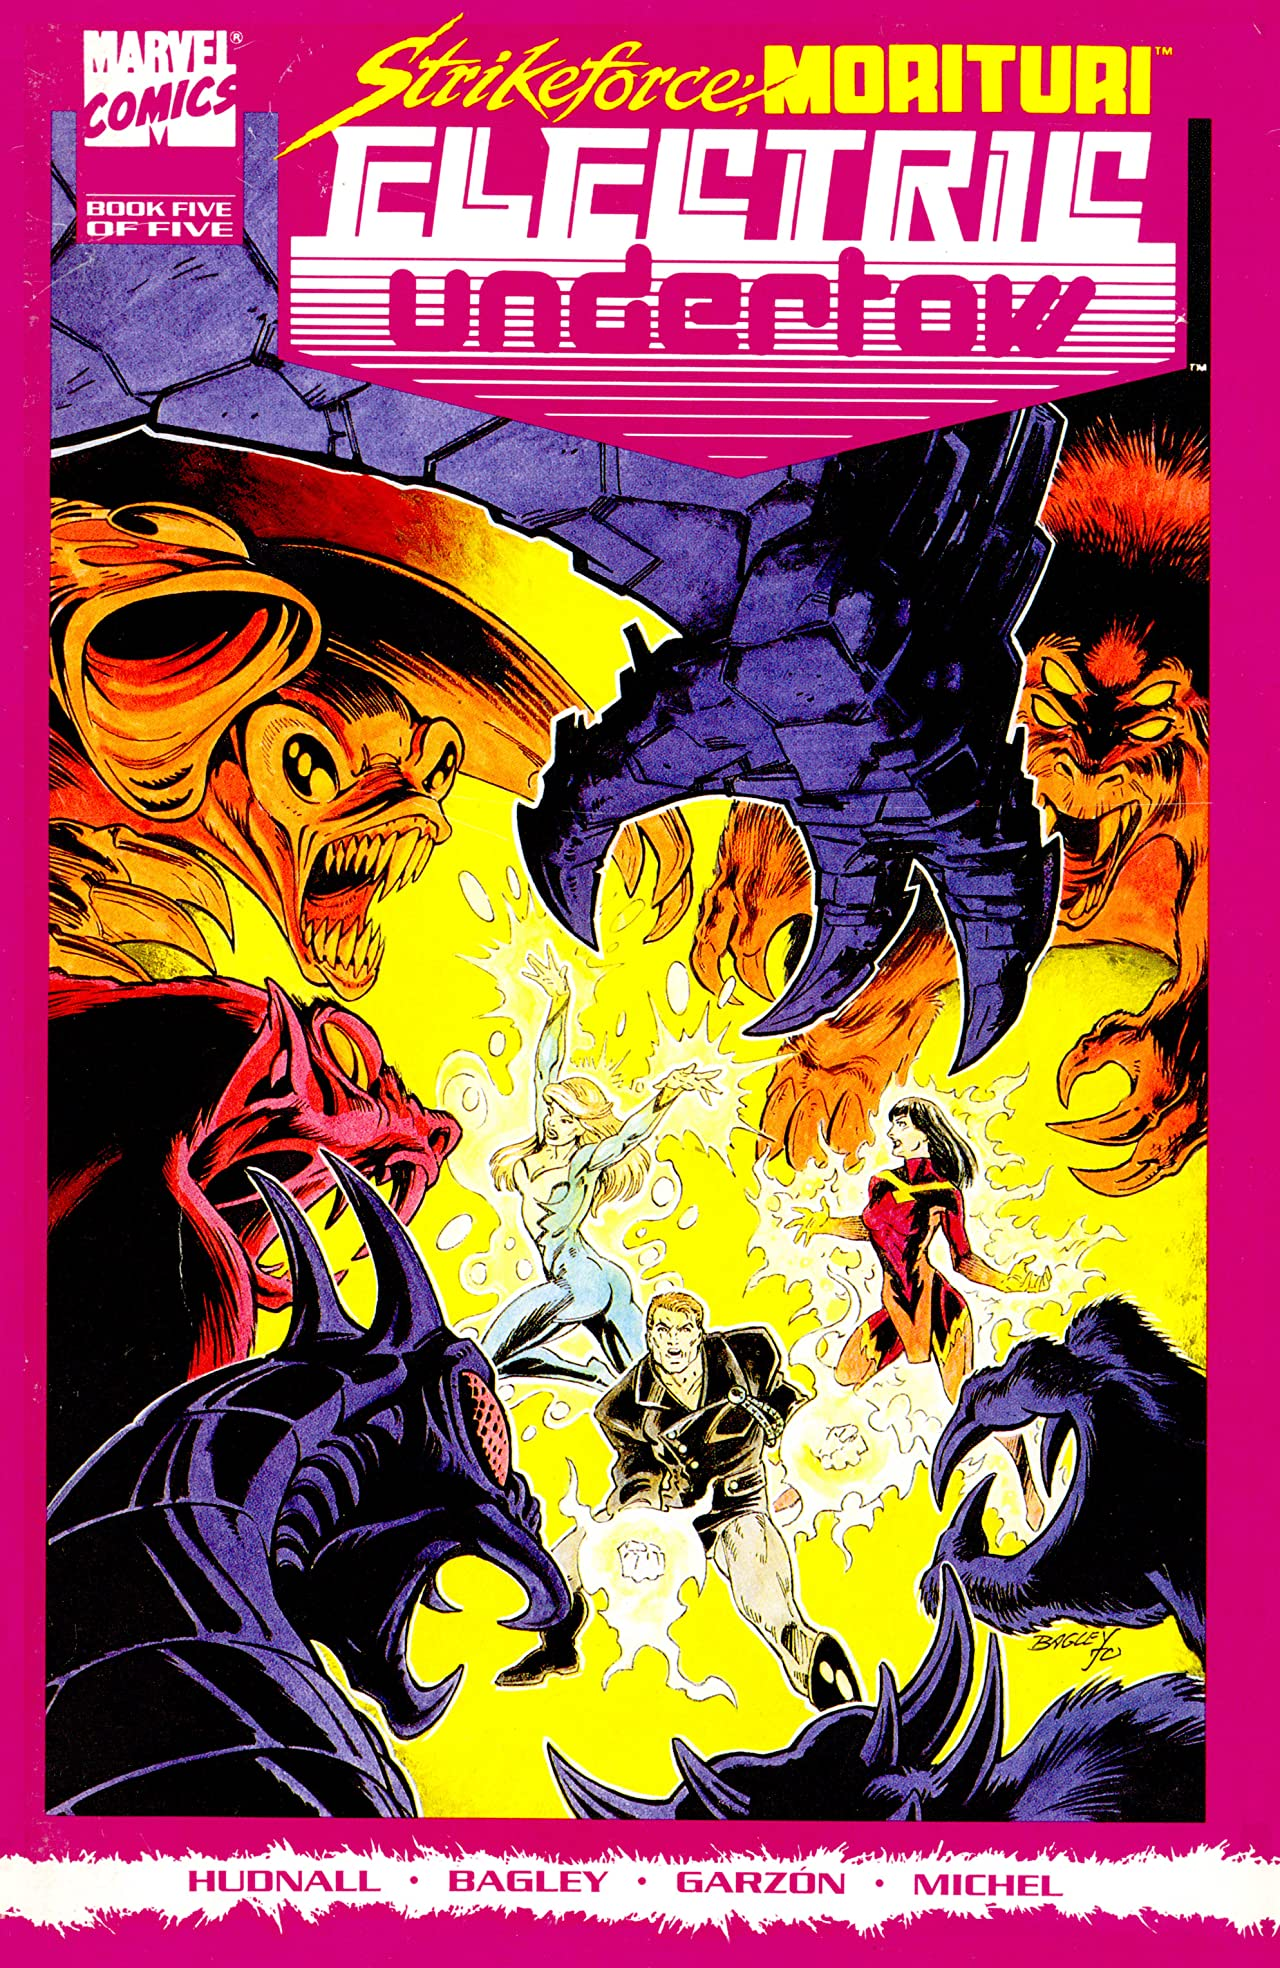 Strikeforce Morituri: Electric Undertow (1989-1990) #5